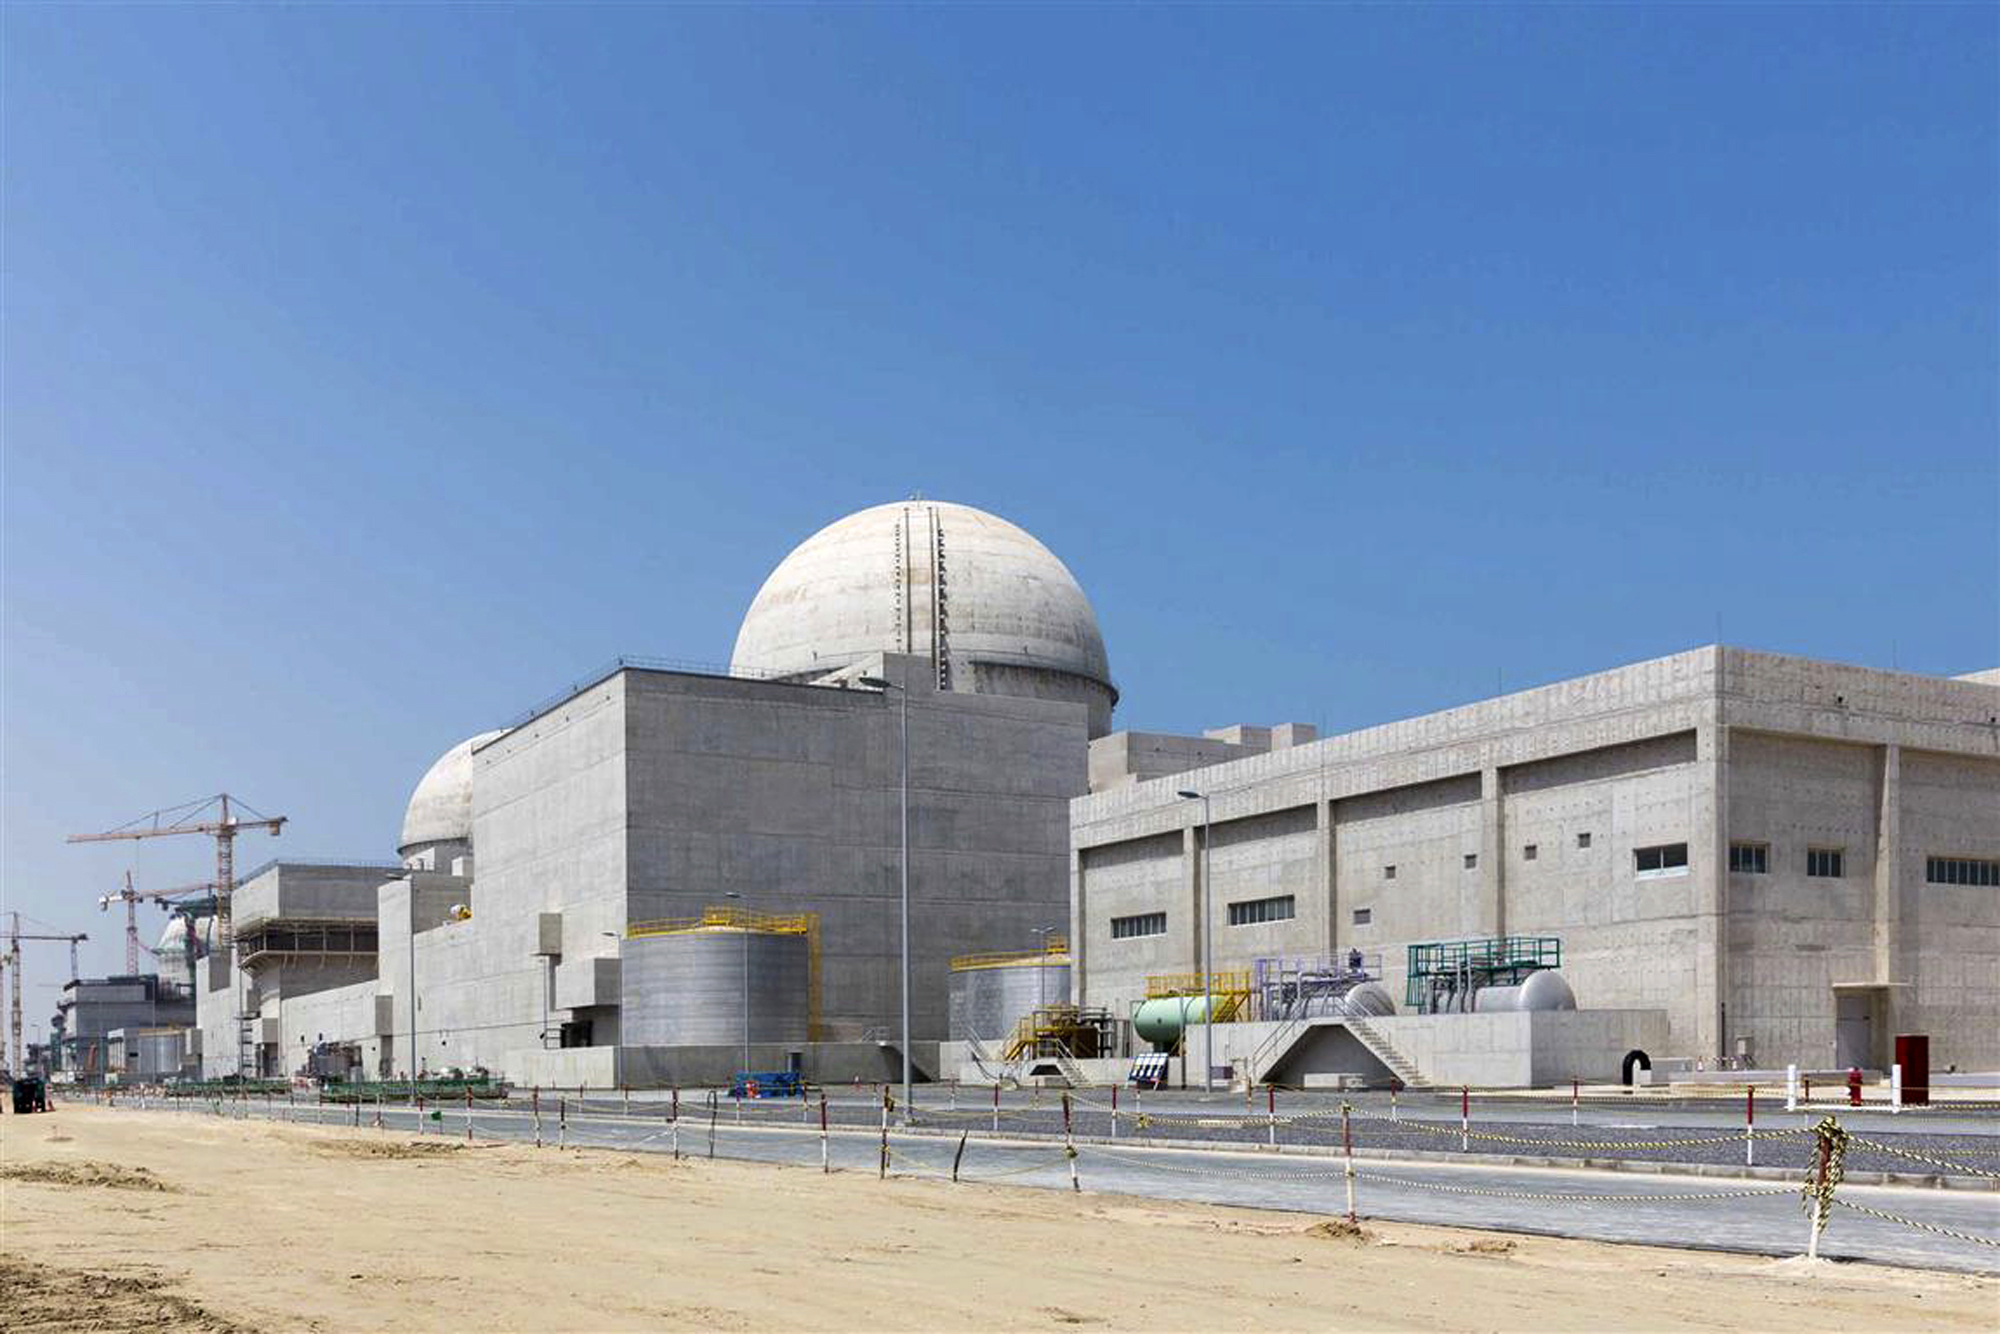 UAE launches Arab world's first nuclear plant